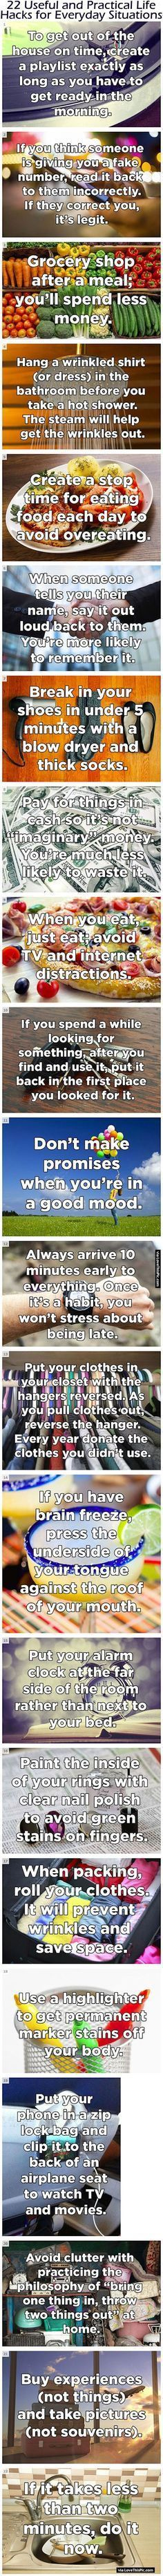 DIY Life Hacks & Crafts : 22 Useful and Practical Life Hacks for Everyday Situations diy diy ideas easy di